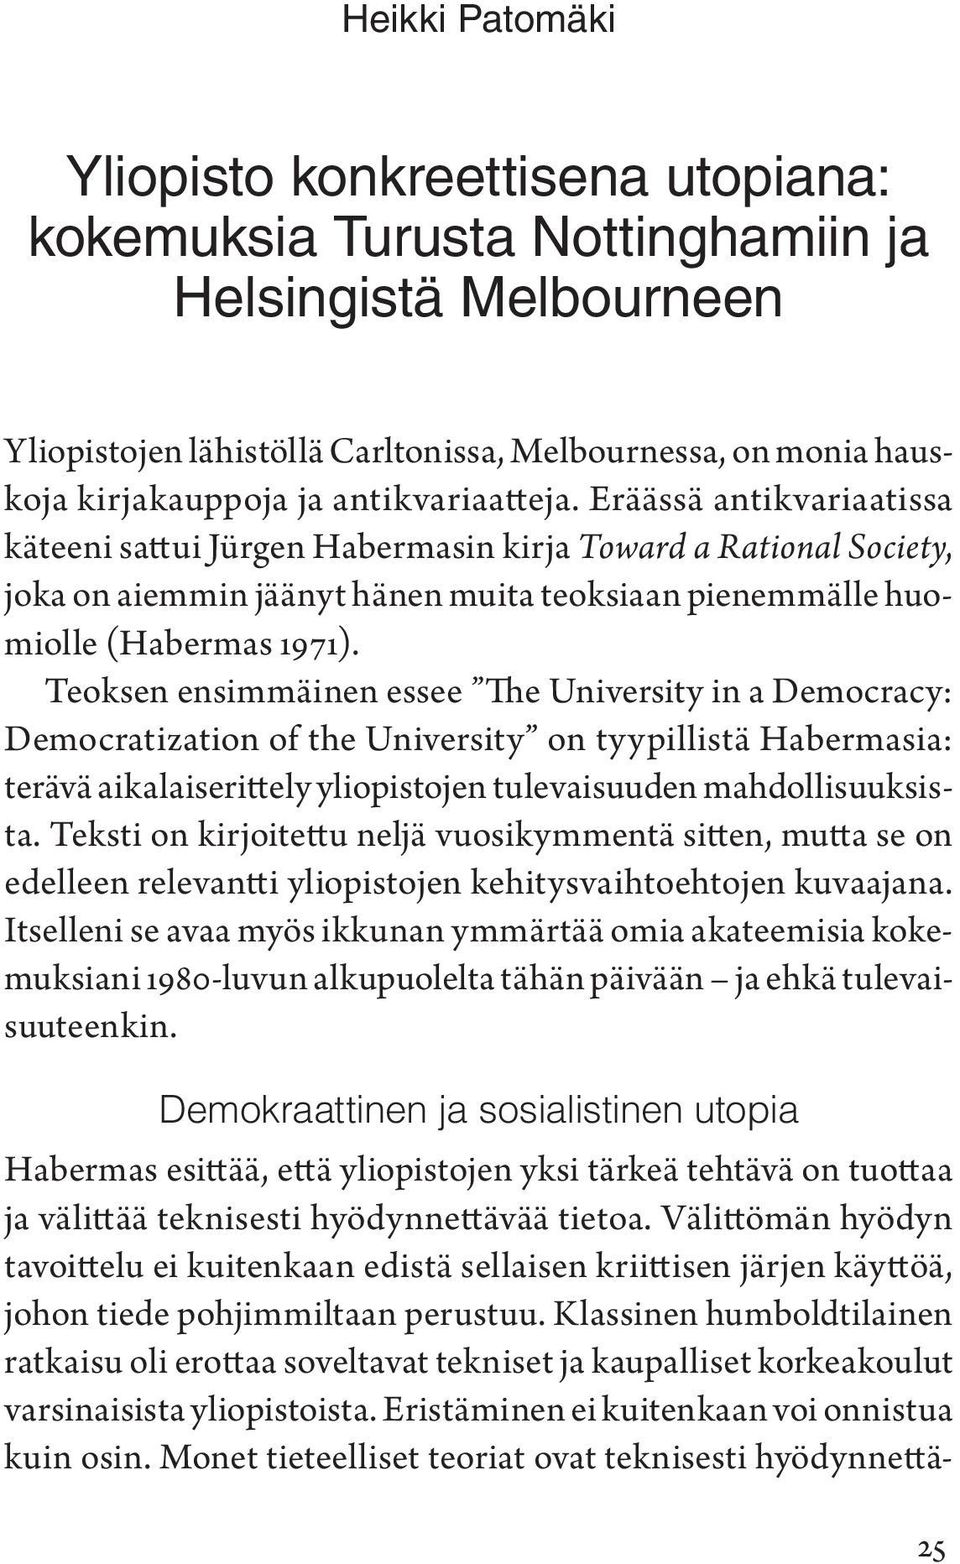 Teoksen ensimmäinen essee The University in a Democracy: Democratization of the University on tyypillistä Habermasia: terävä aikalaiserittely yliopistojen tulevaisuuden mahdollisuuksista.